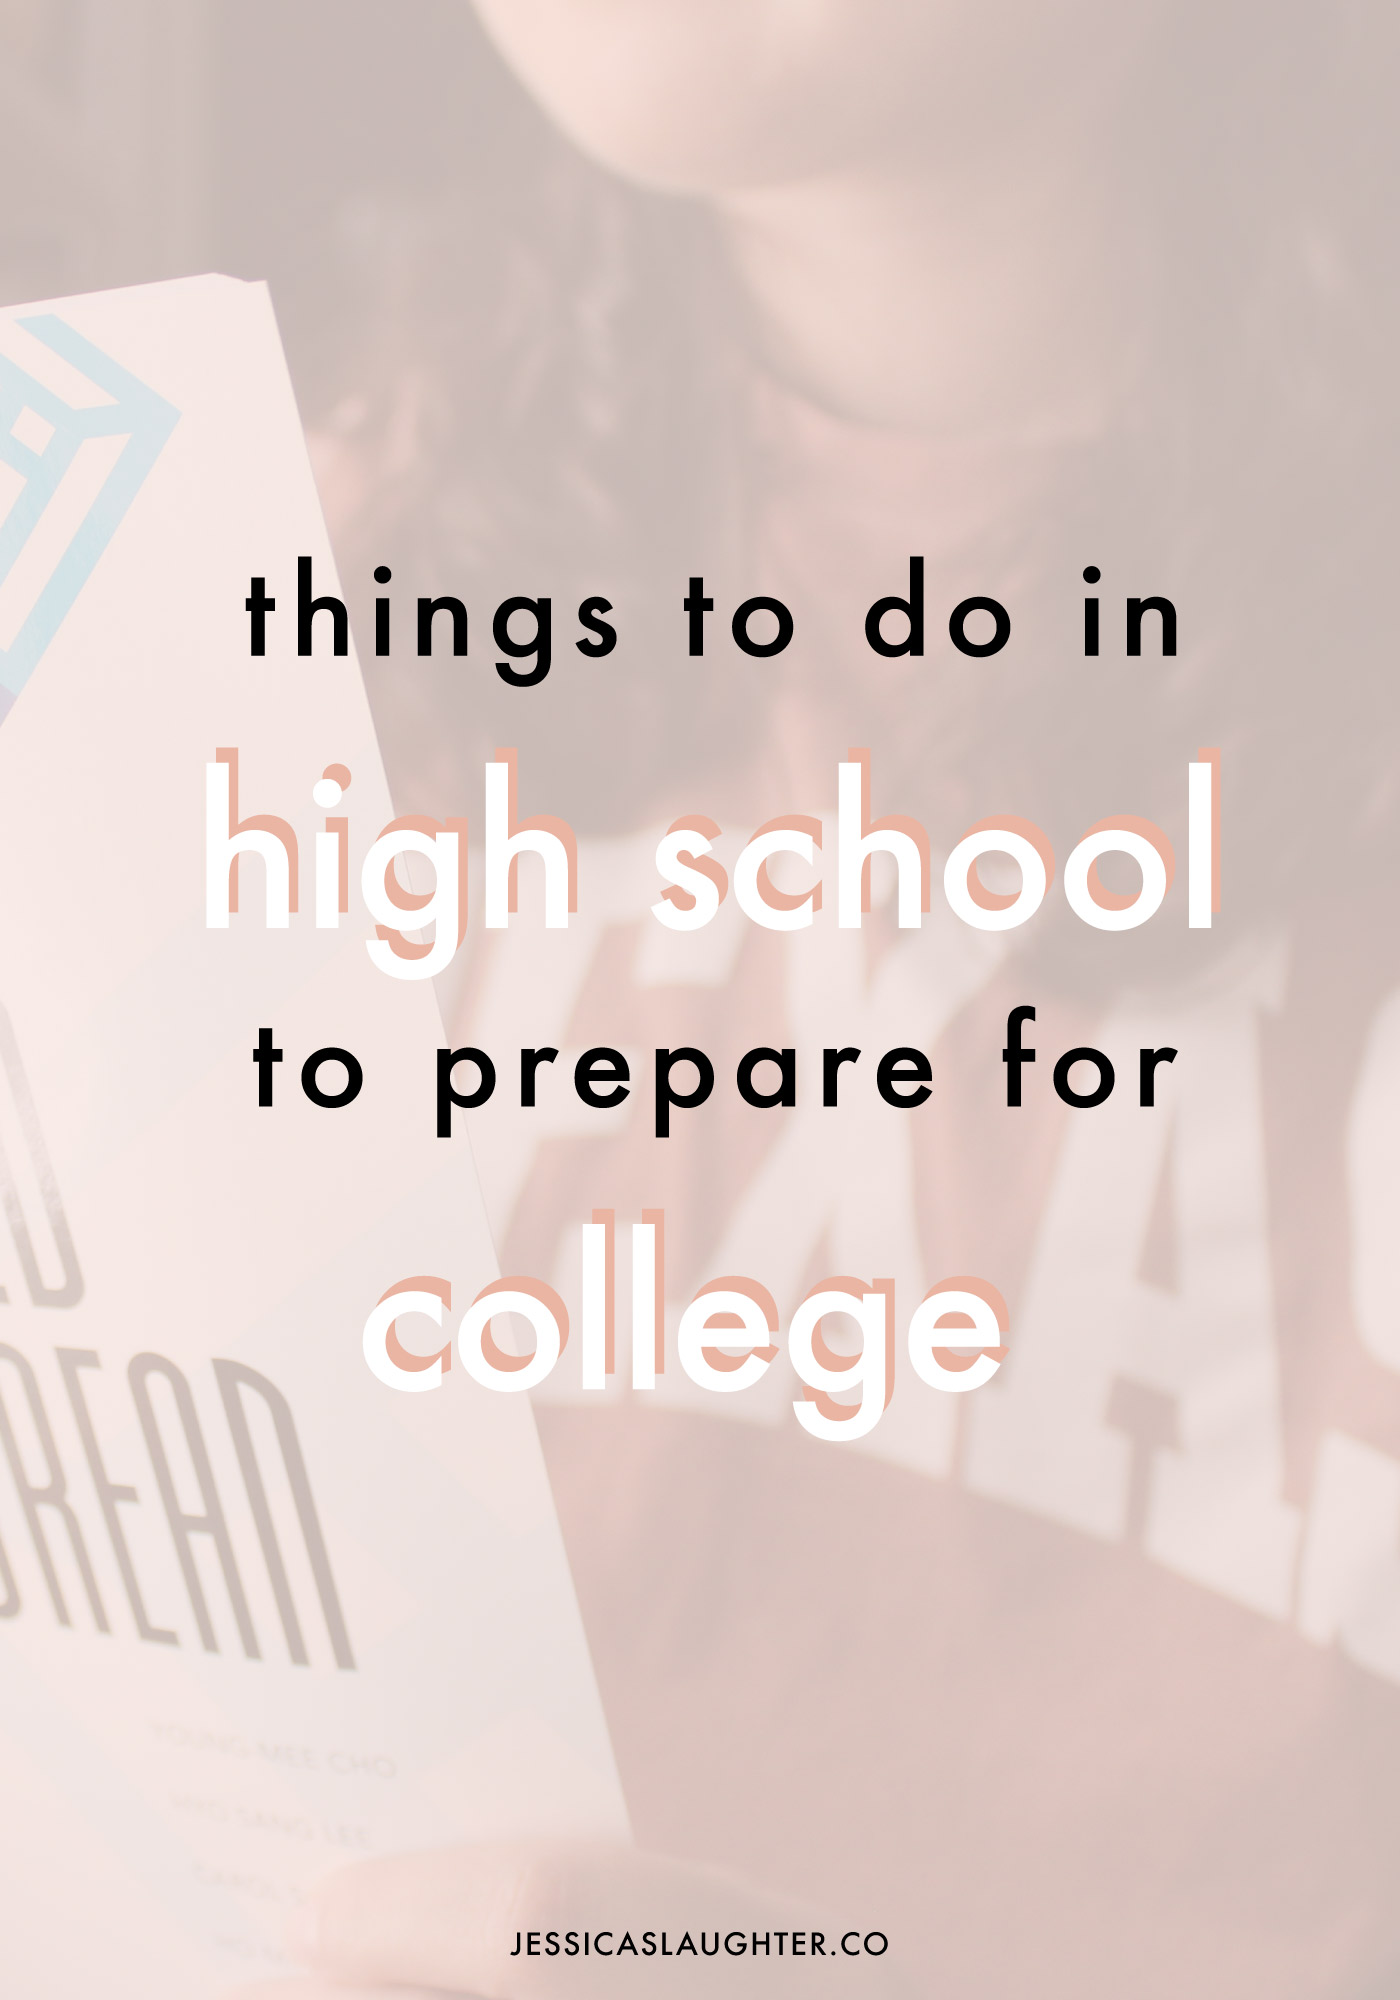 high school prepared me college How effective was pacific lutheran jr/ sr high school's instruction  the  school didn't just prepare me for college, they helped me with the process, most  of.